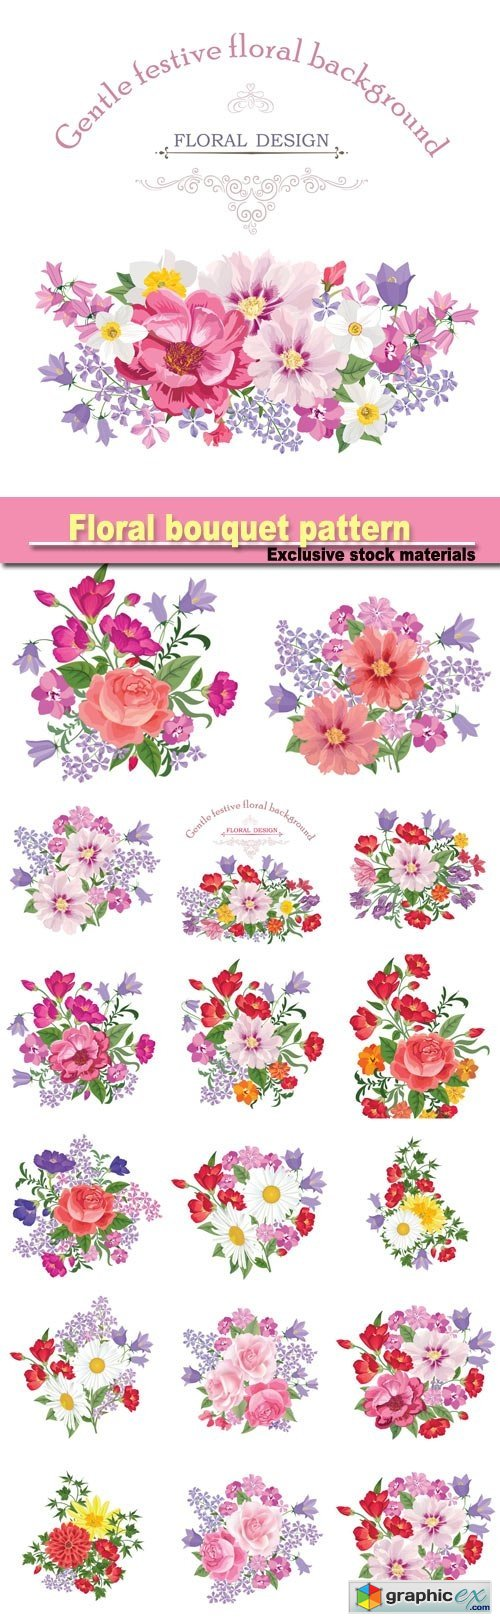 Floral bouquet pattern, vintage vector card with flowers